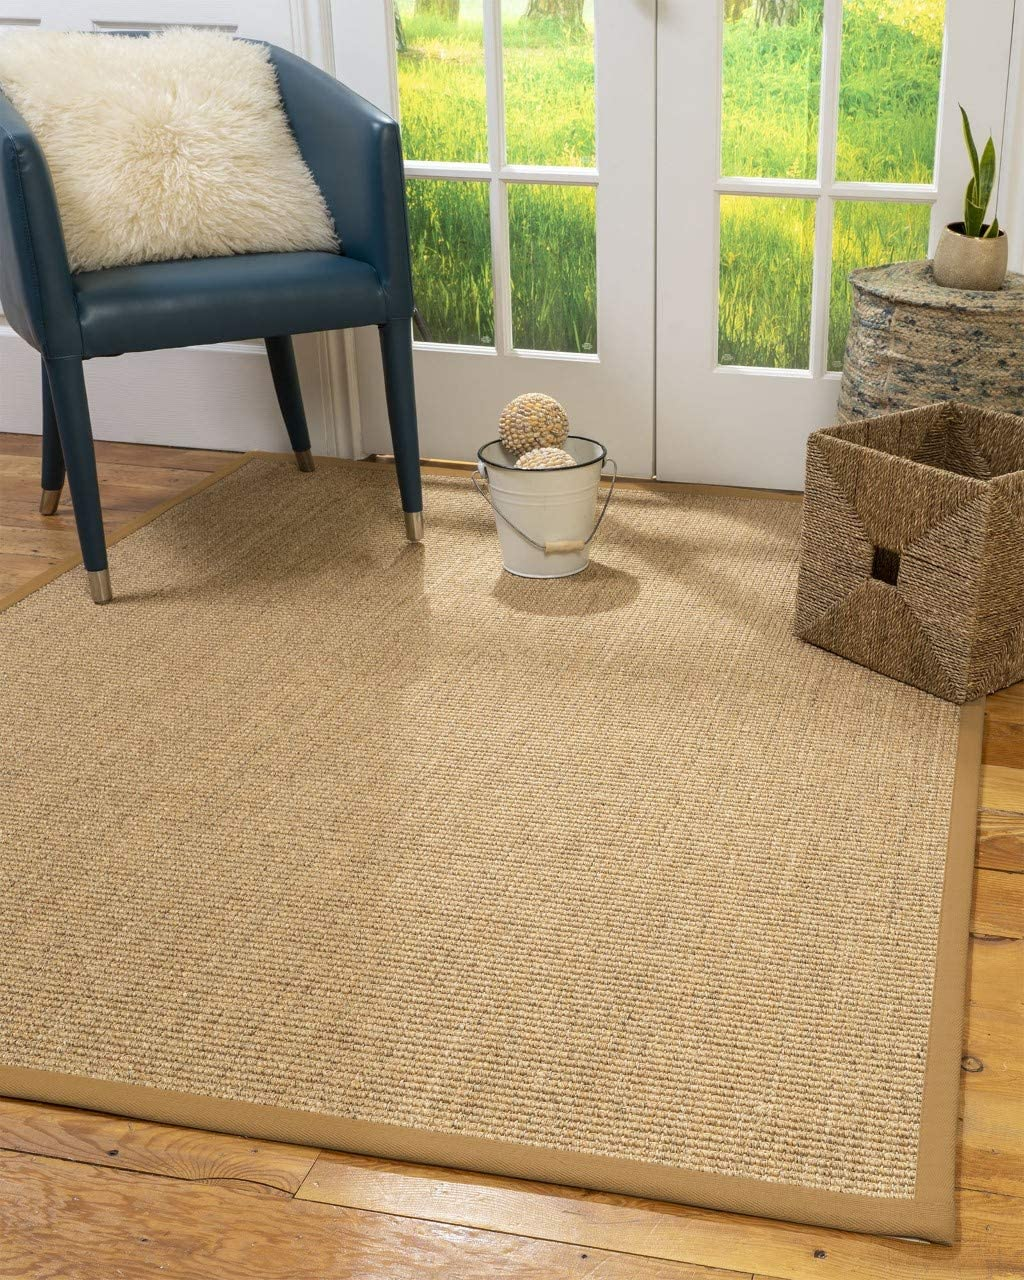 Natural Area Rugs 100 Natural Fiber Handmade Studio, Beige Sisal Rug, 2 9 x 9 Khaki Border